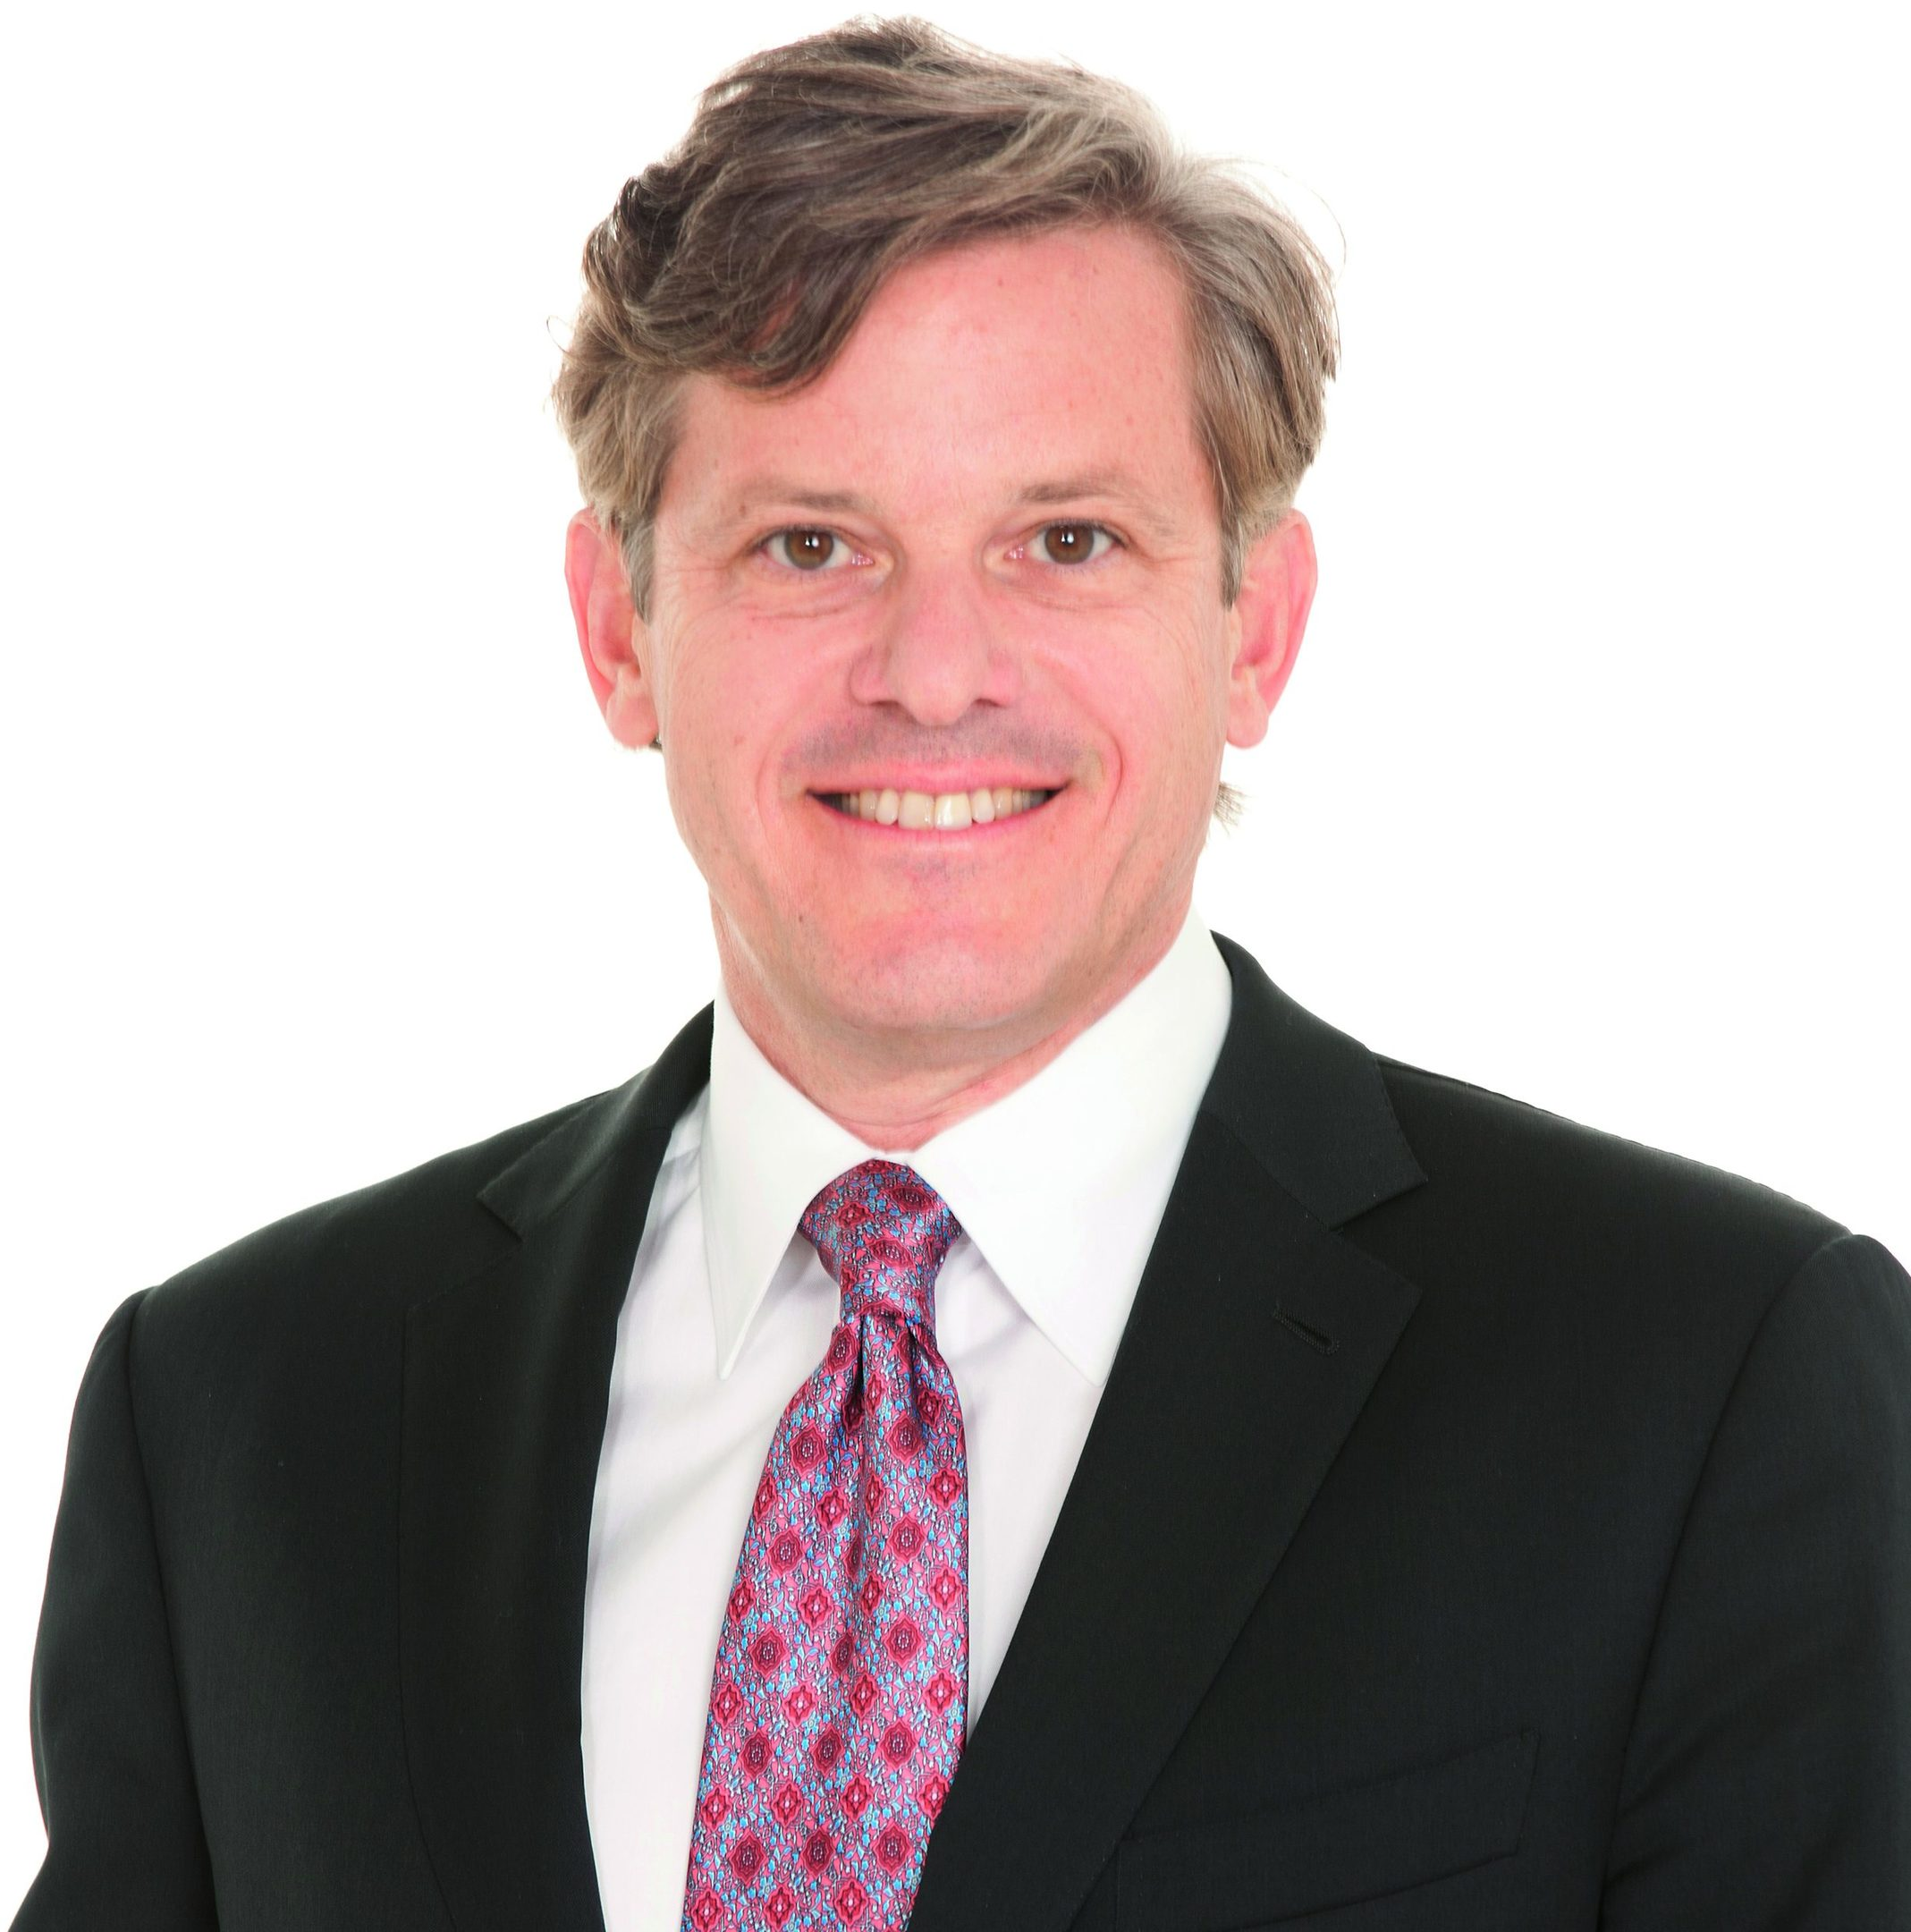 Roland Hartley-Urquhart is the US managing director of Greensill Capital